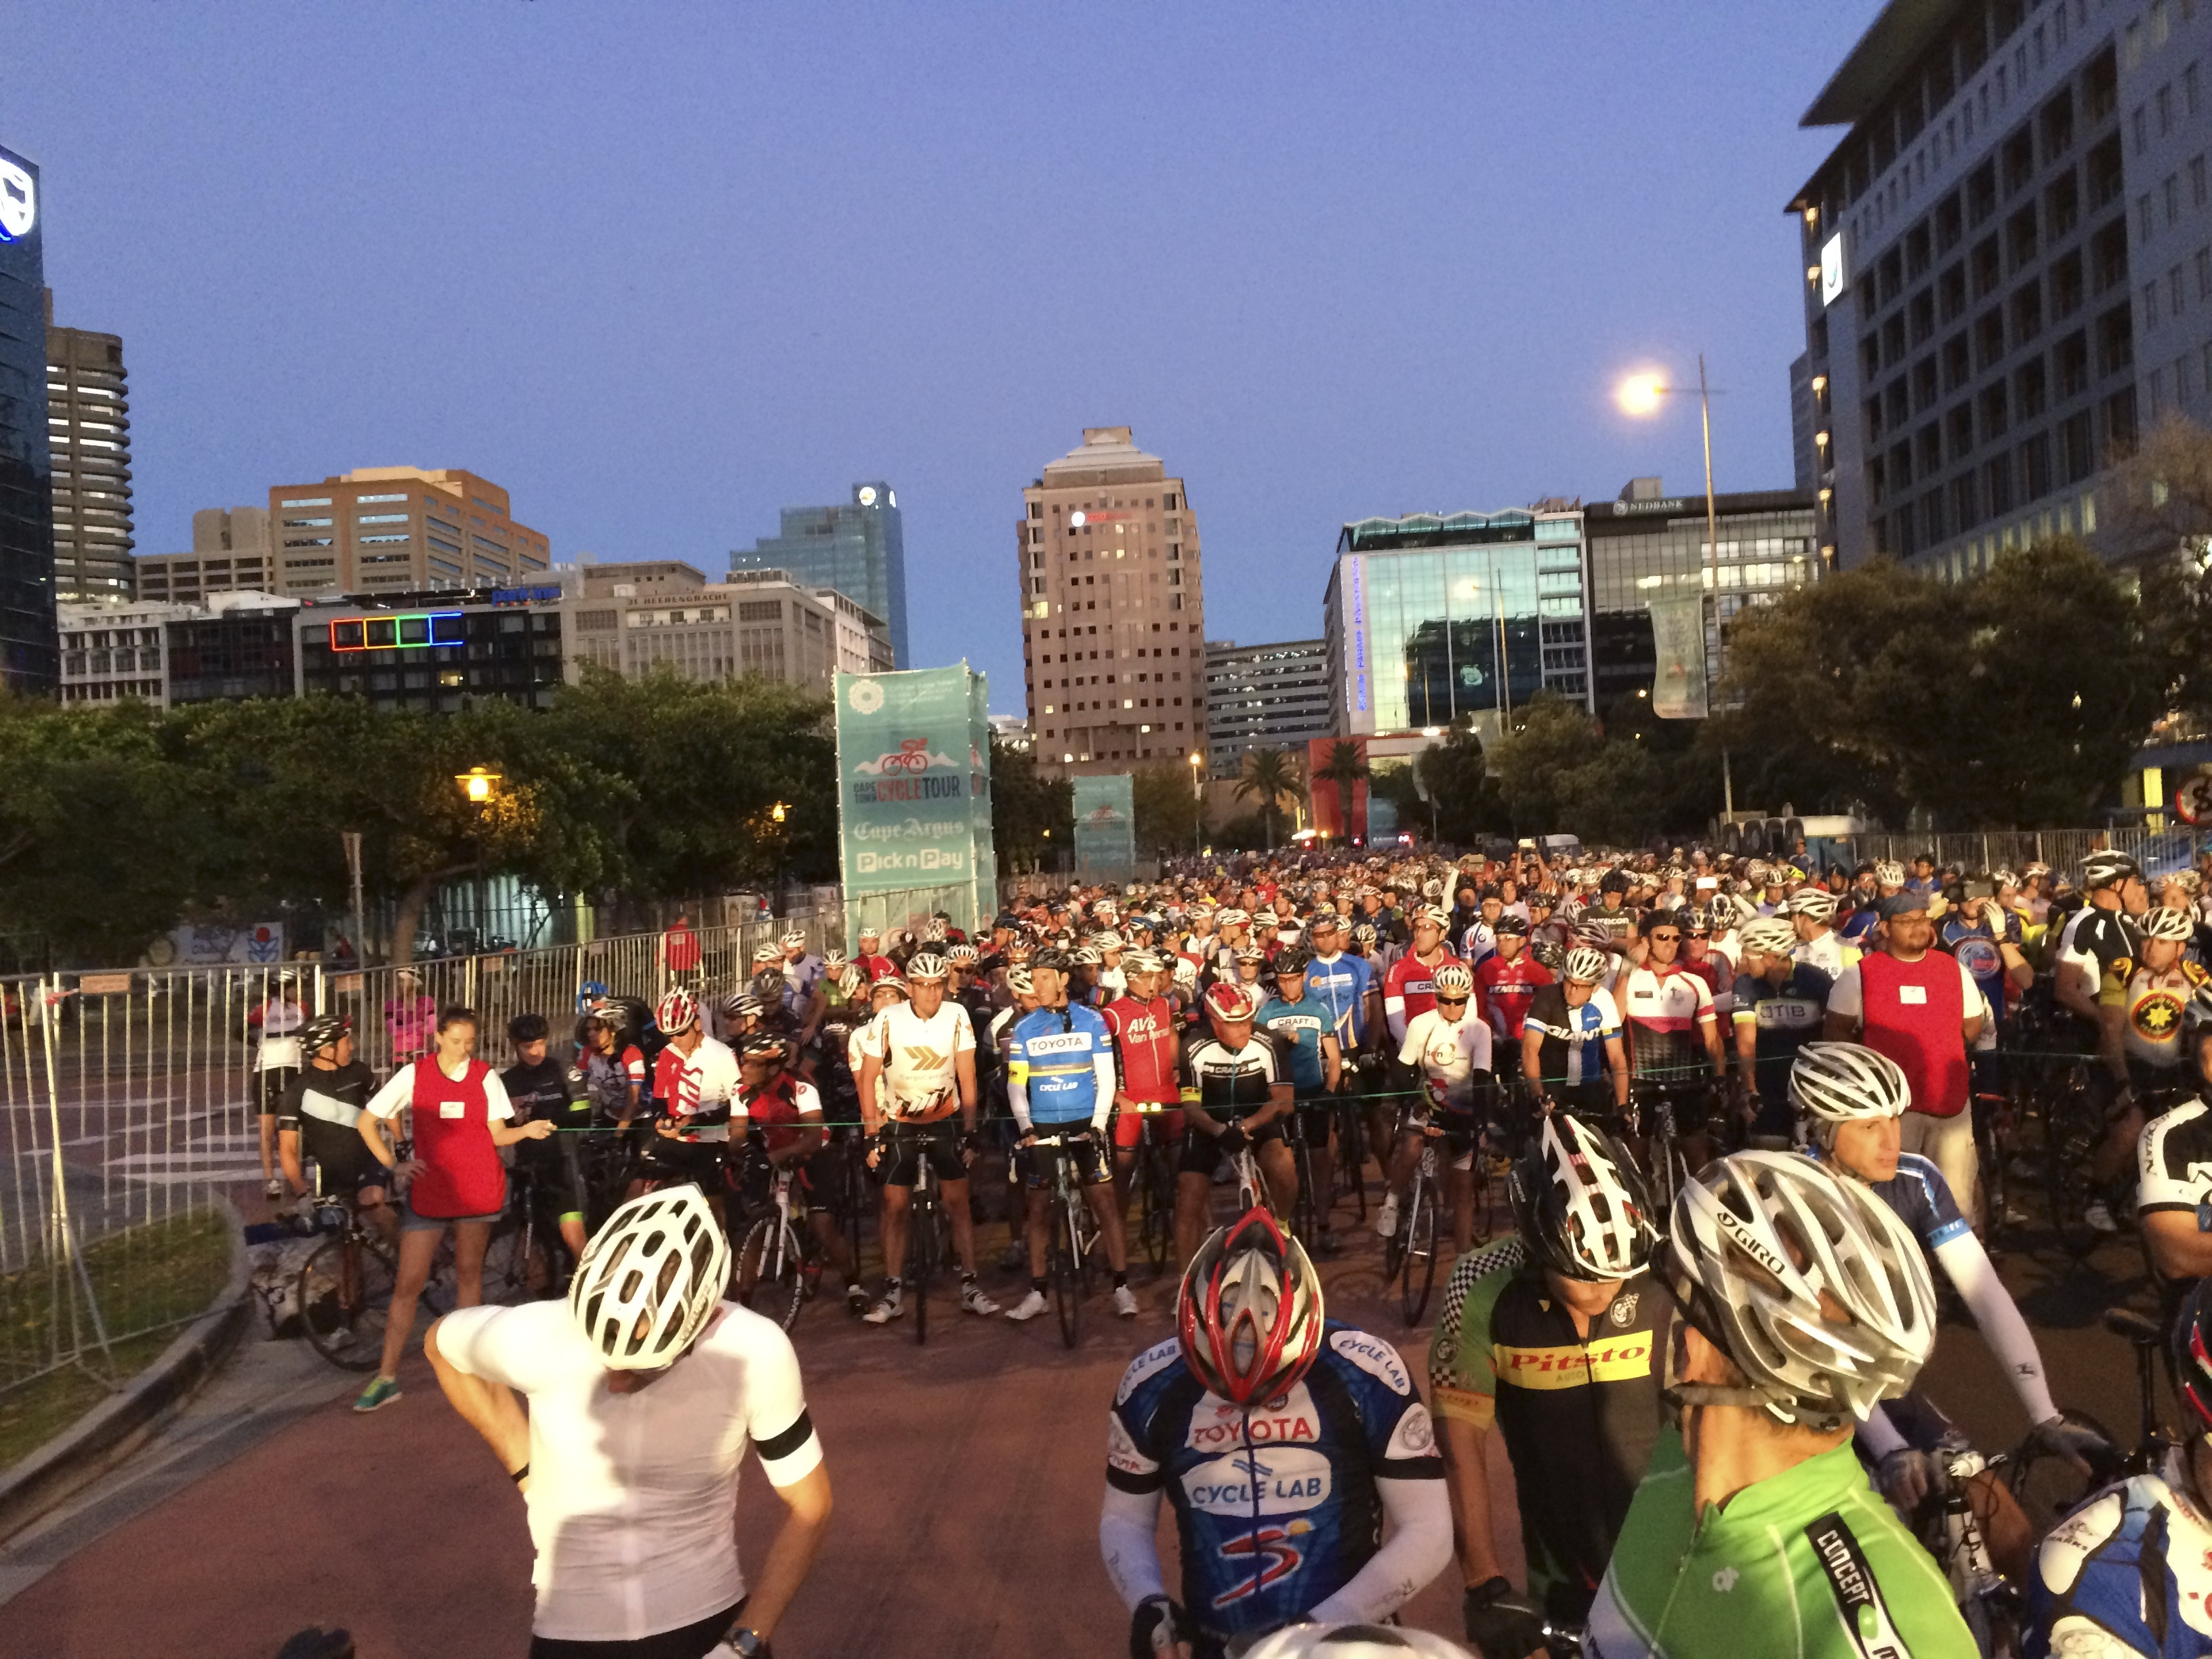 Group 1C at the starting line, Cape Town Cycle Tour, March 2015